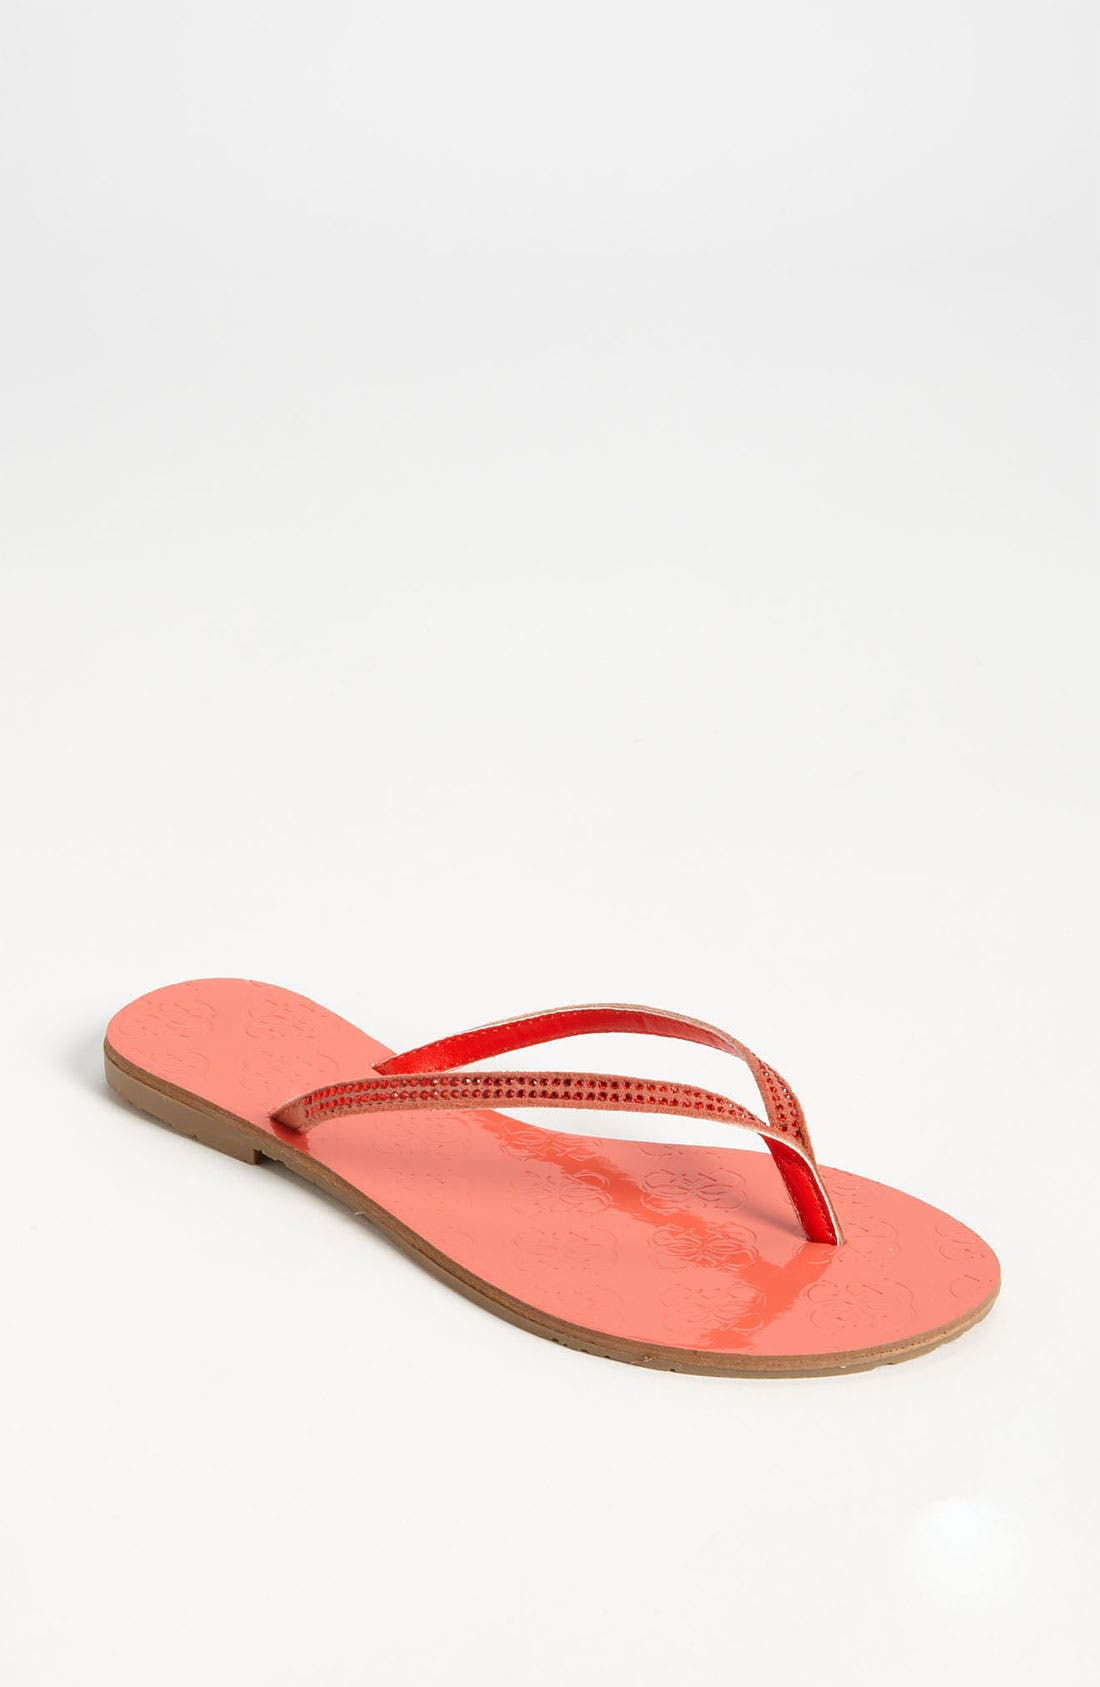 Alternate Image 1 Selected - GUESS 'Laidley 2' Flip Flop